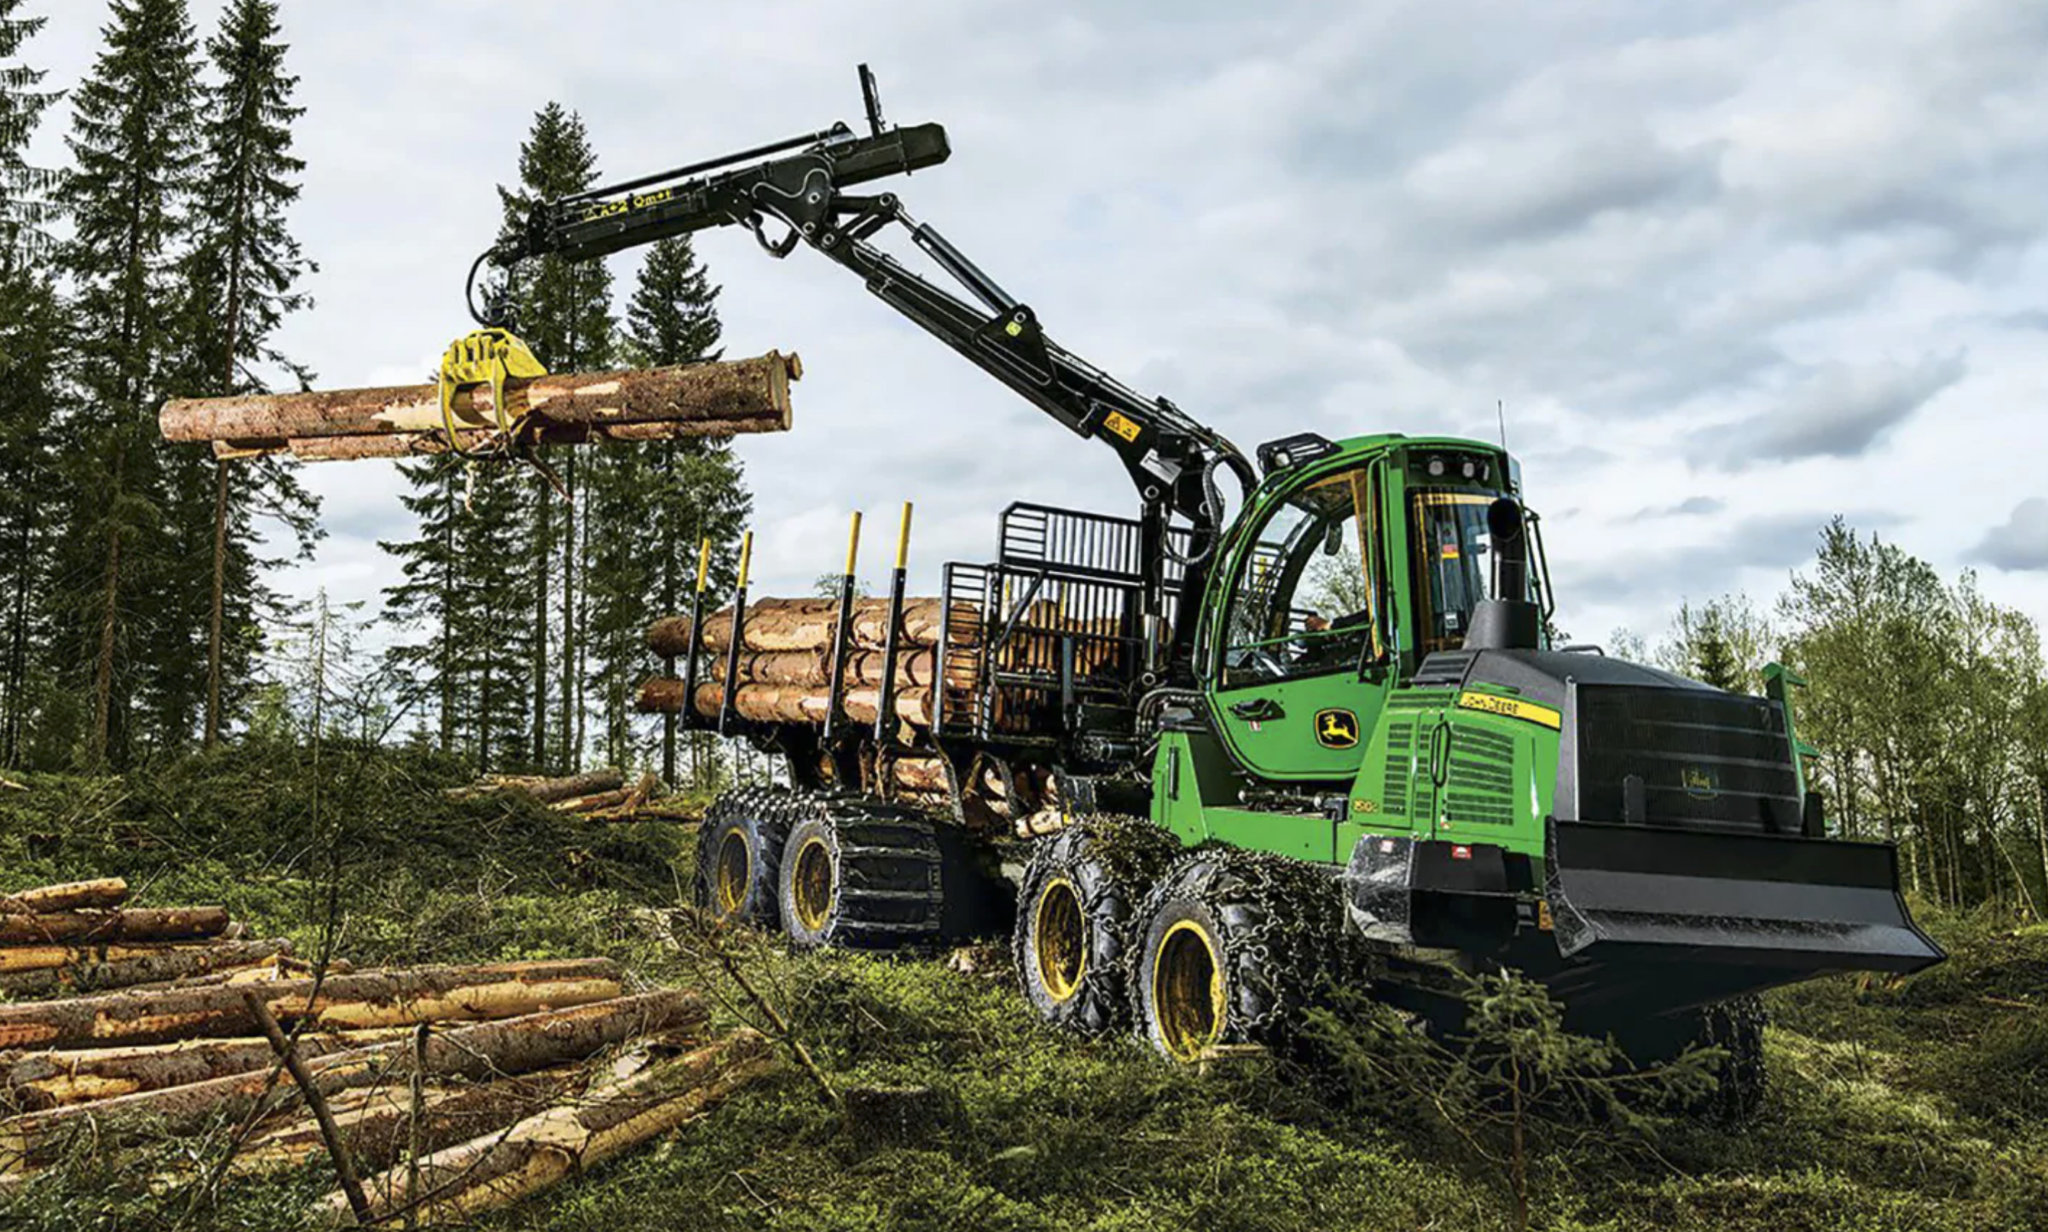 Viewpoint: Climate change threatens our forests. Smarter fire control and sustainable logging can help us fight back